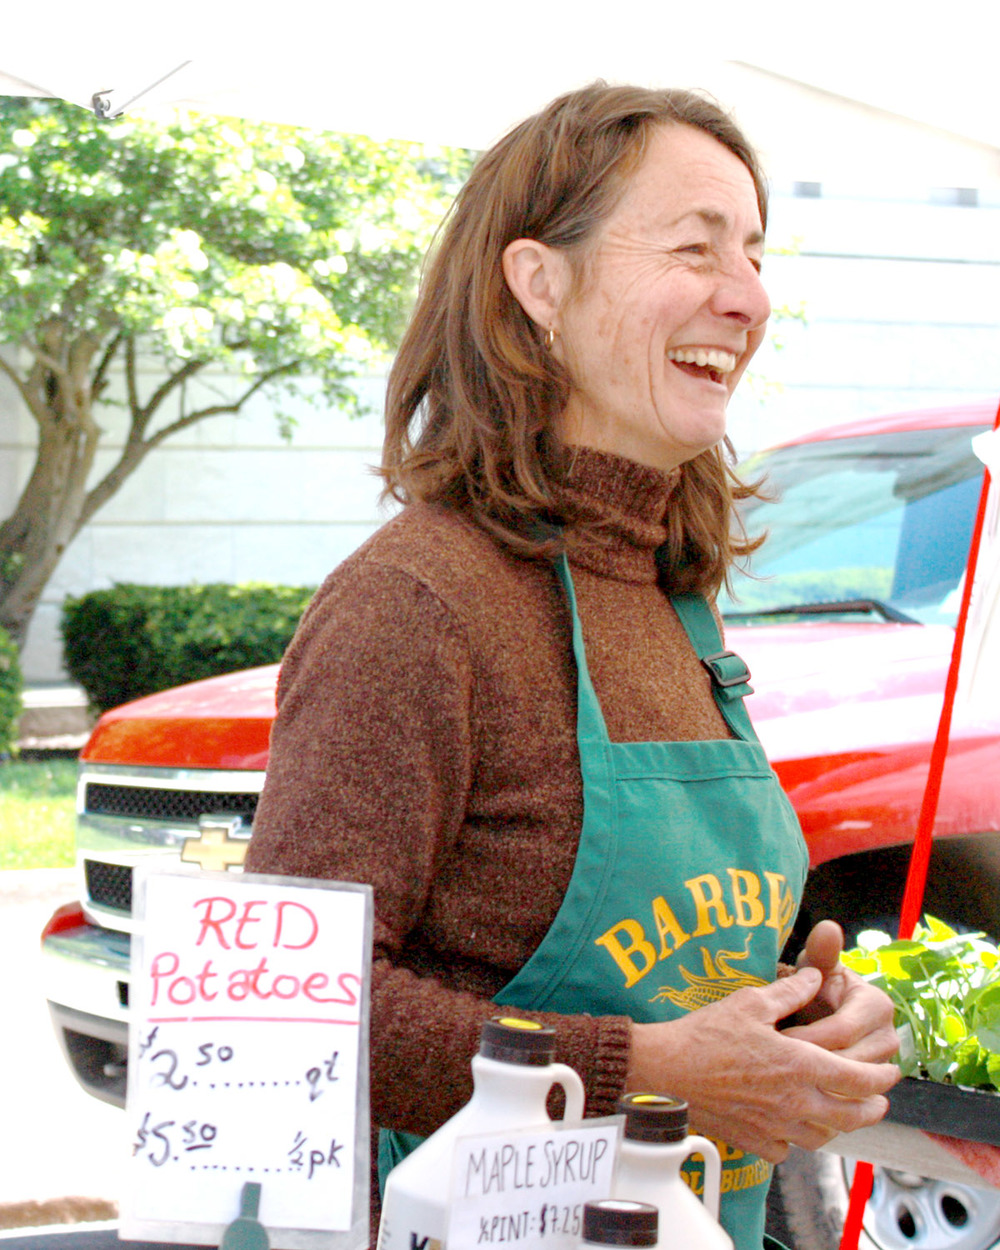 Barber Farms is one of our first stops at the Schenectady Greenmarket every Sunday.